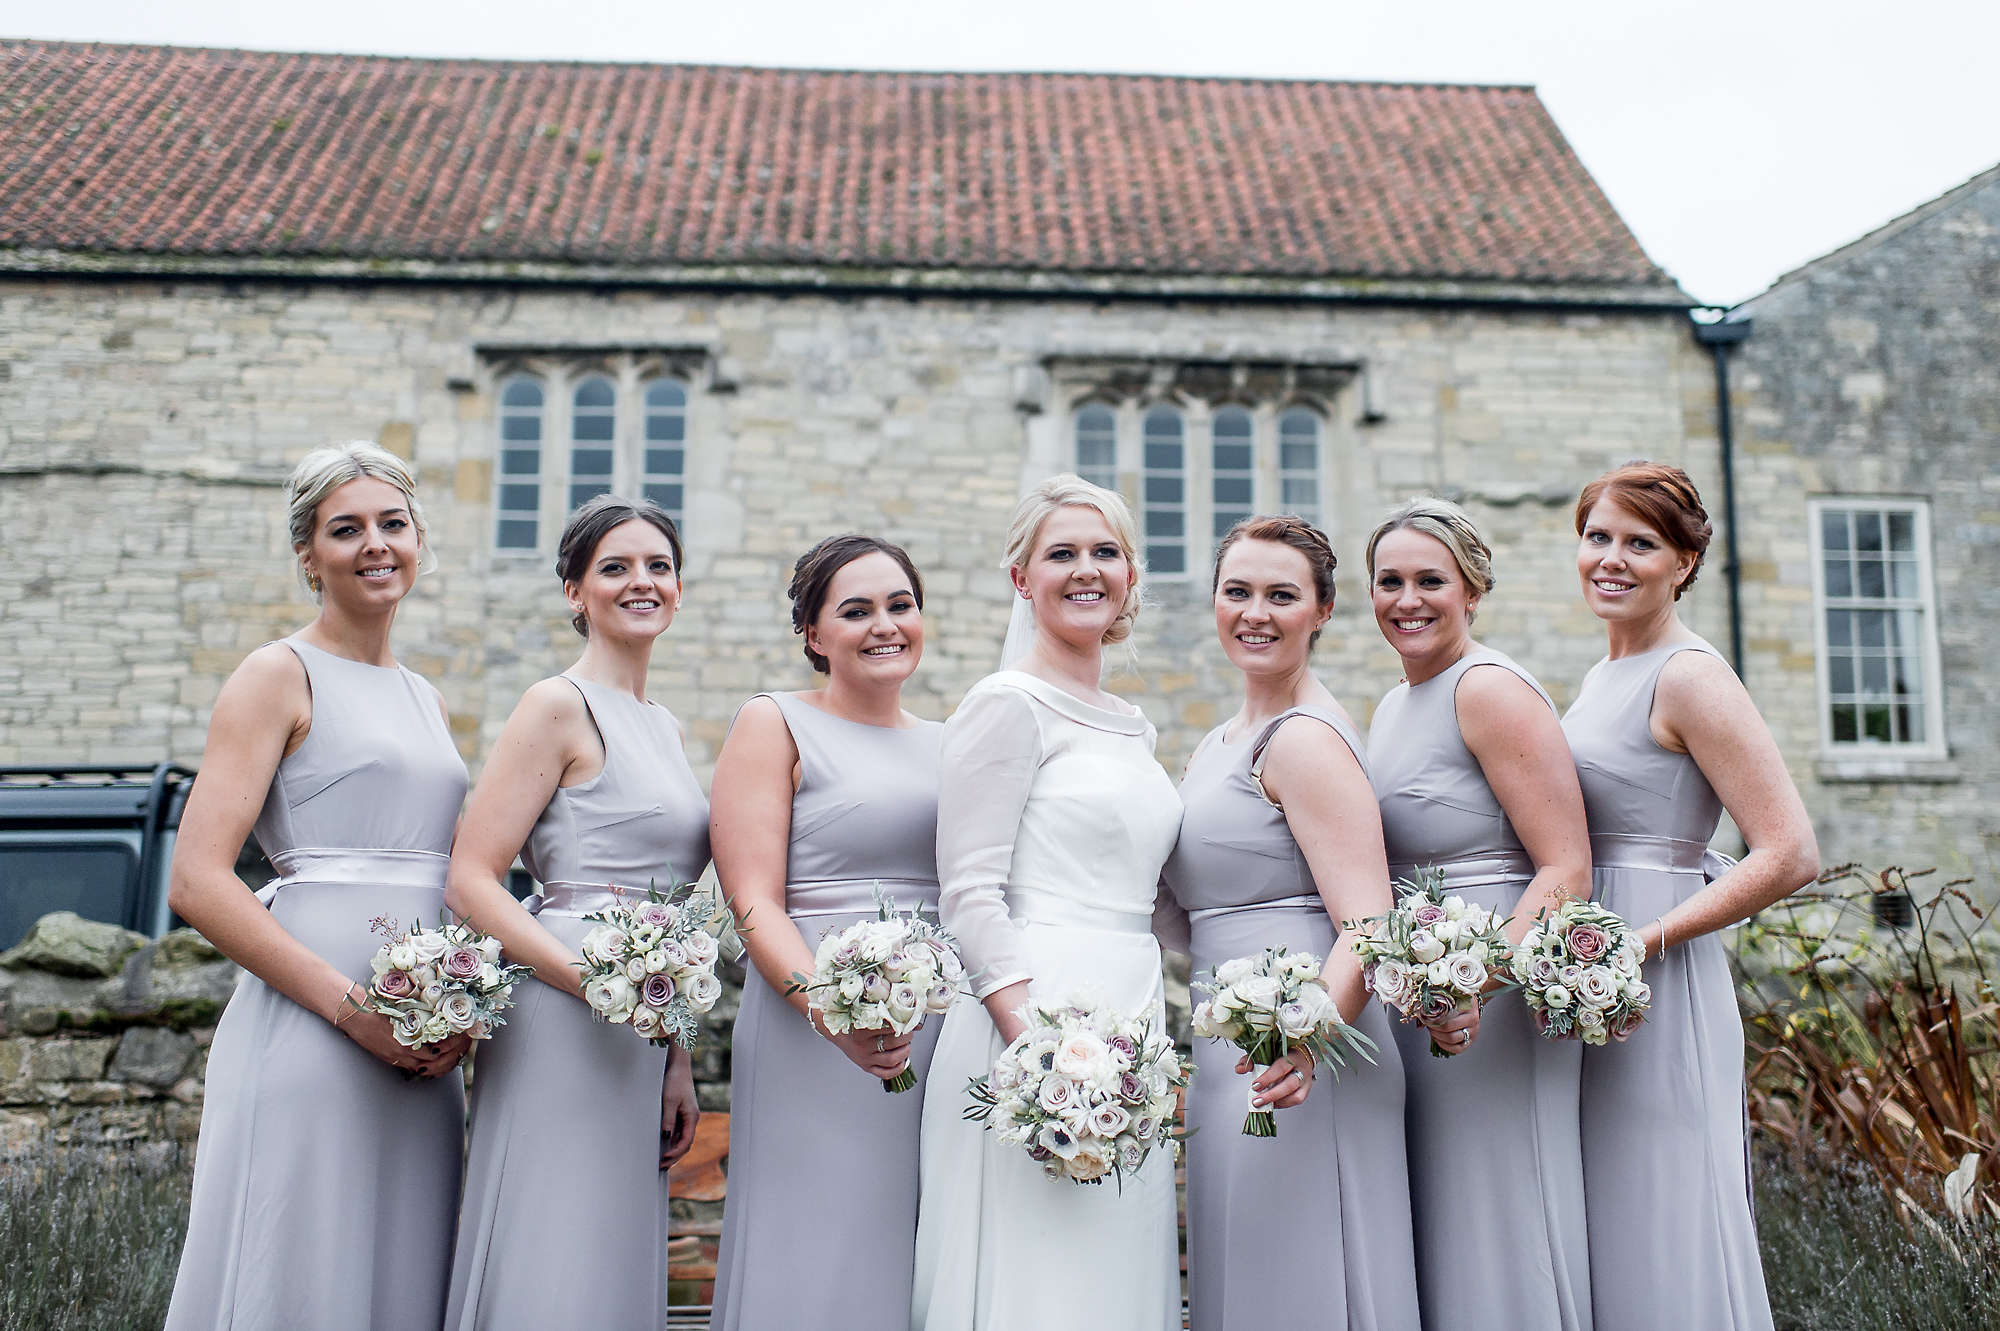 Priory cottages wedding photographer 0007